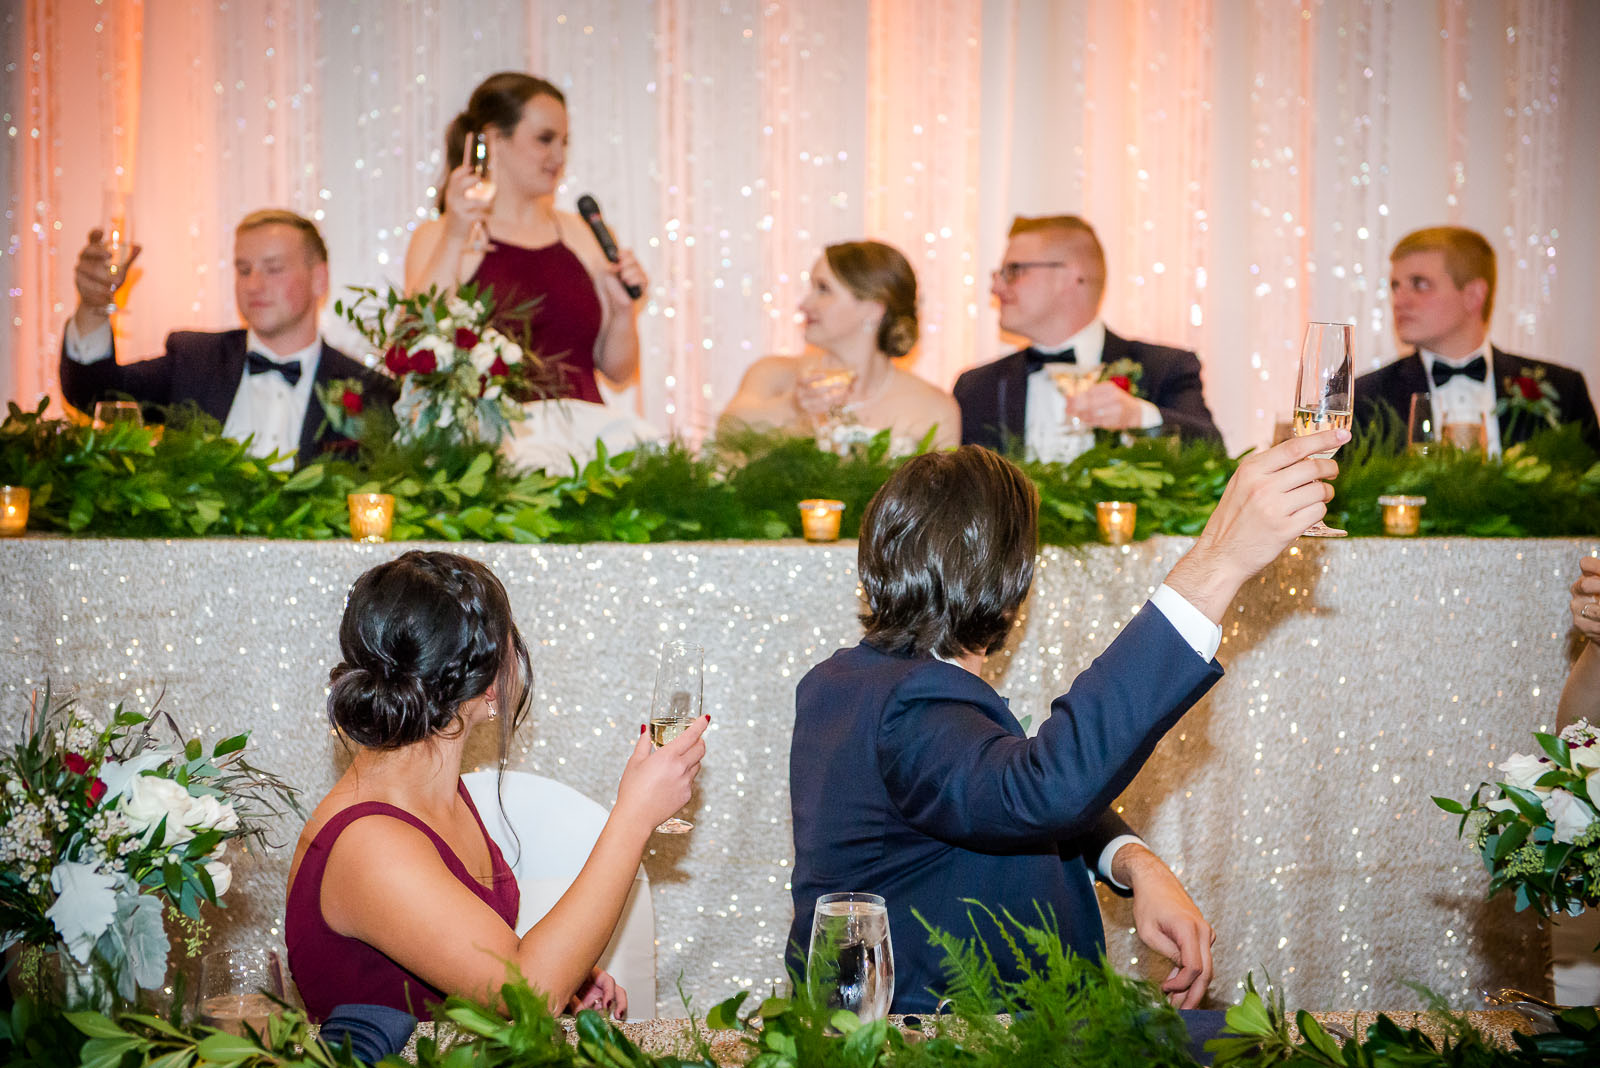 Eric_and_Christy_Photography_Blog_Wedding_Erica_Mike-71